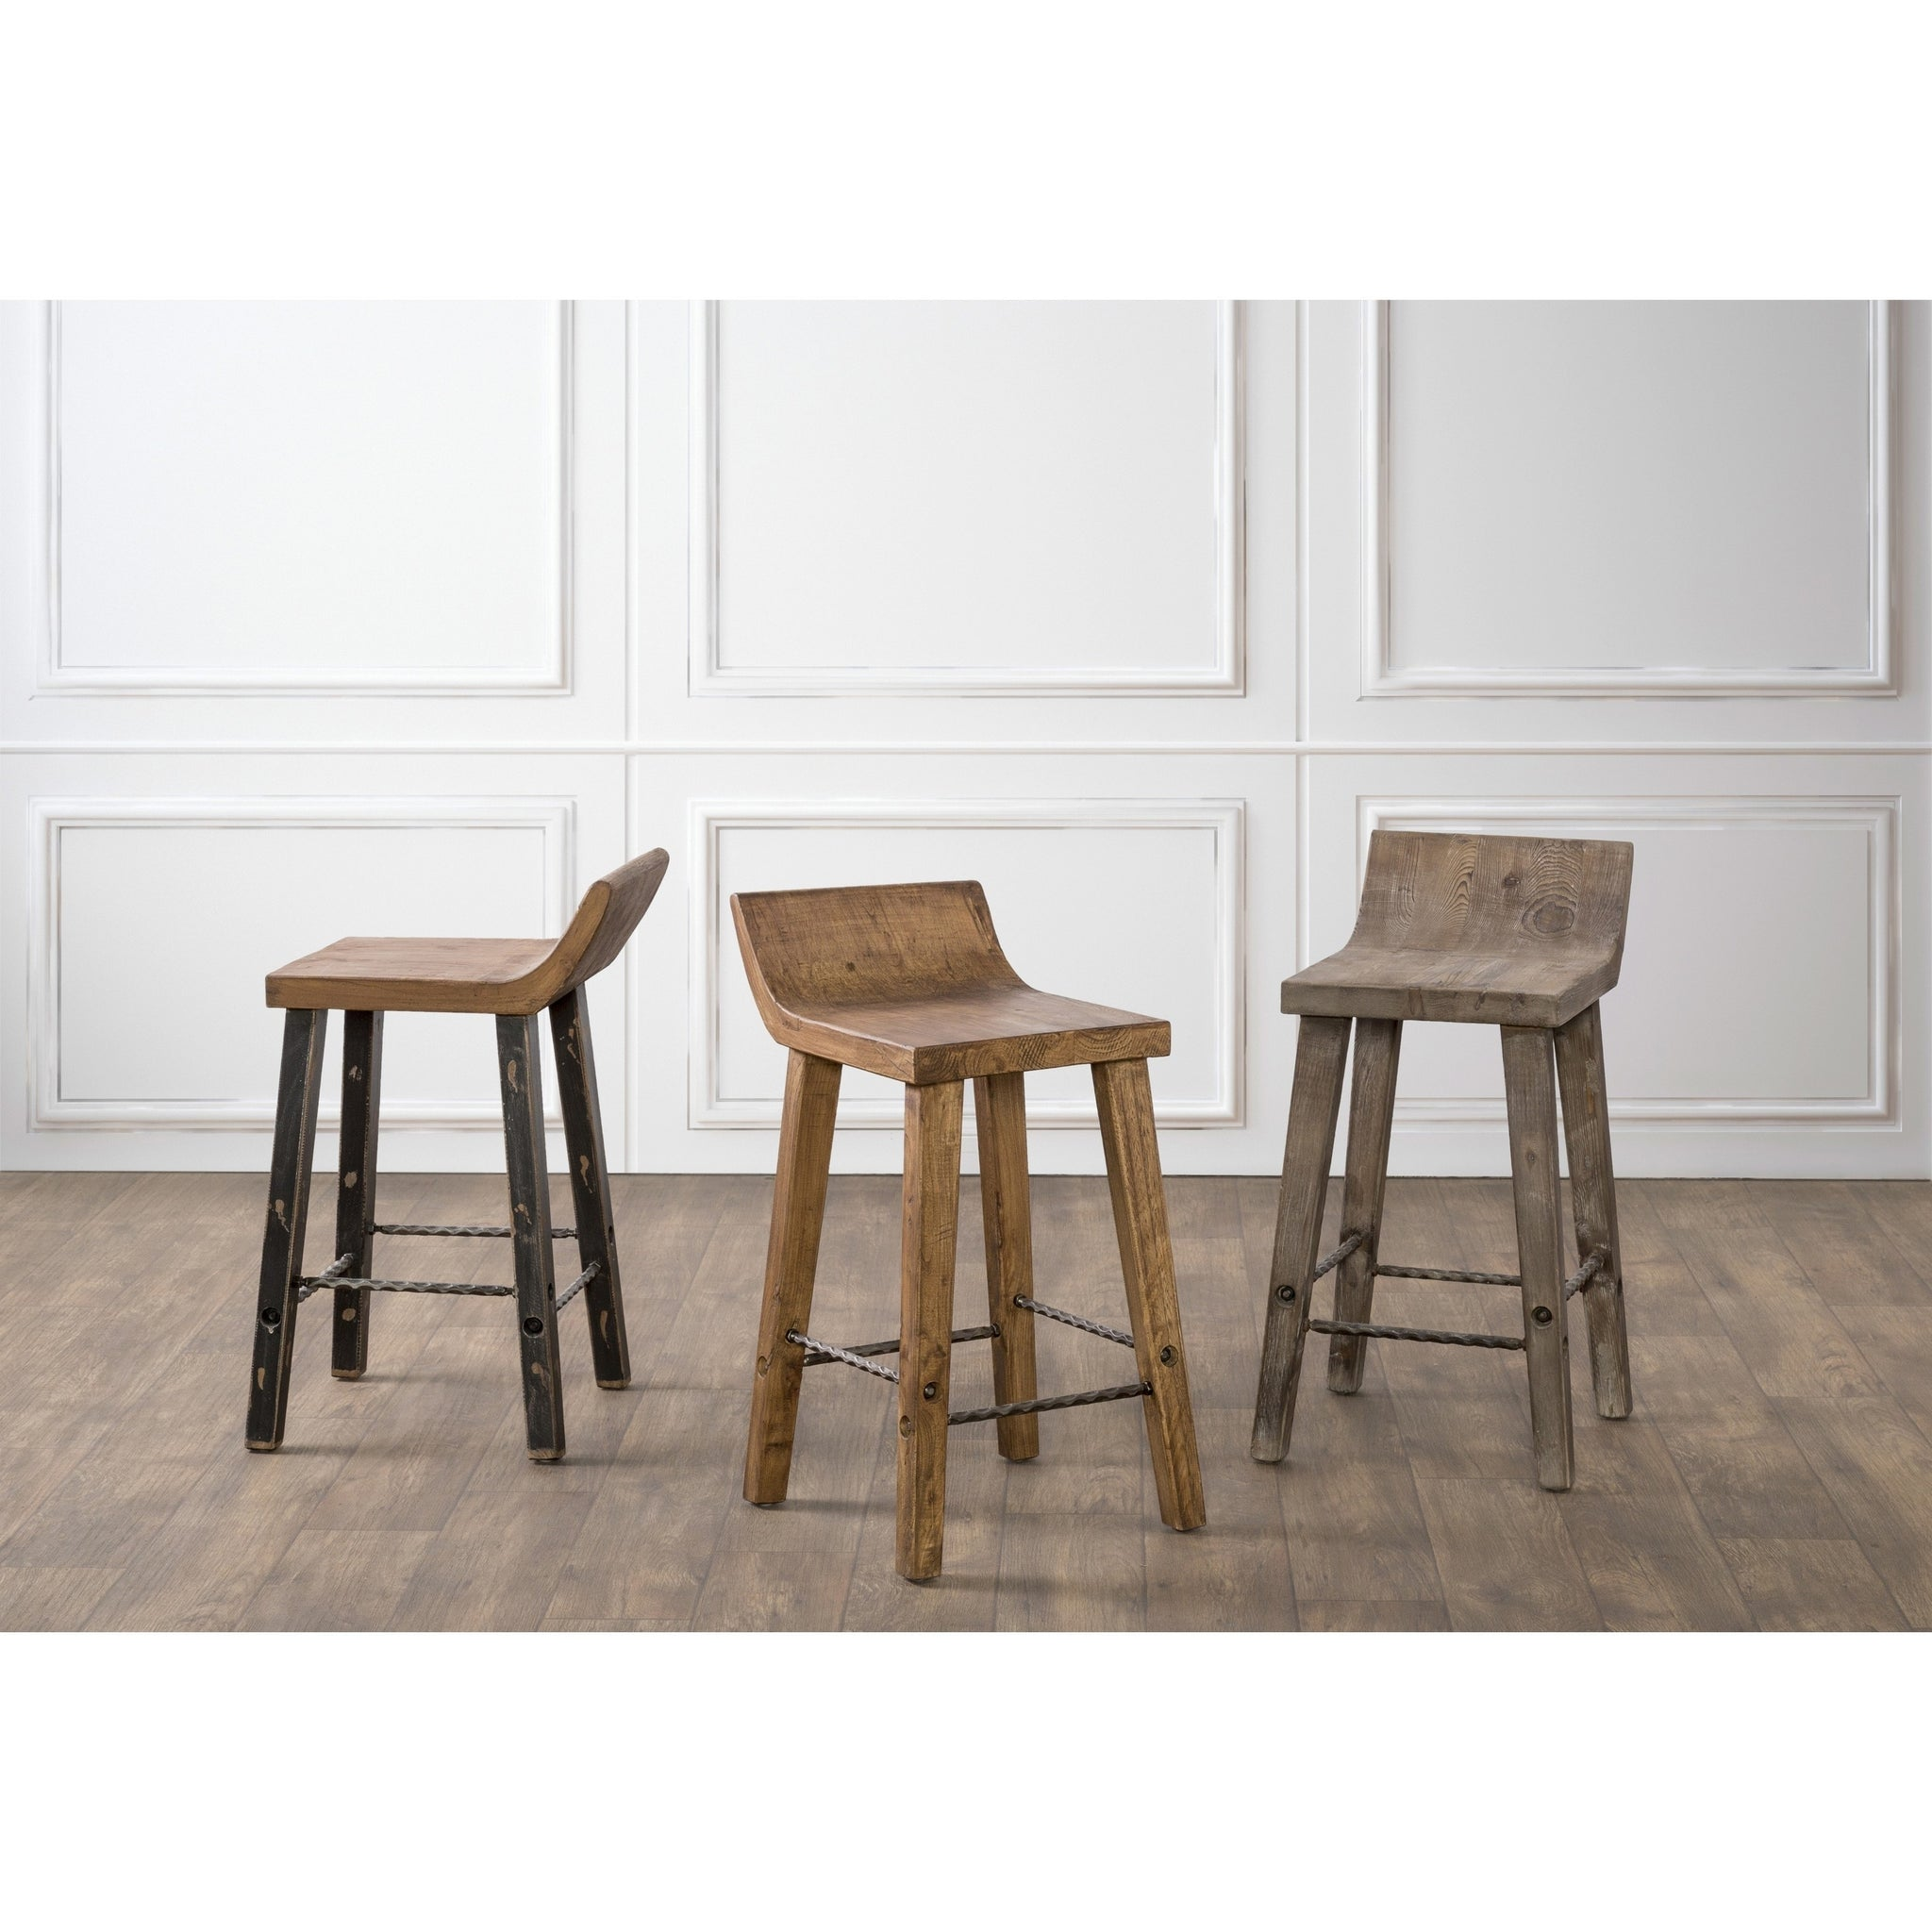 Natural Low-back Wood Counter Stool